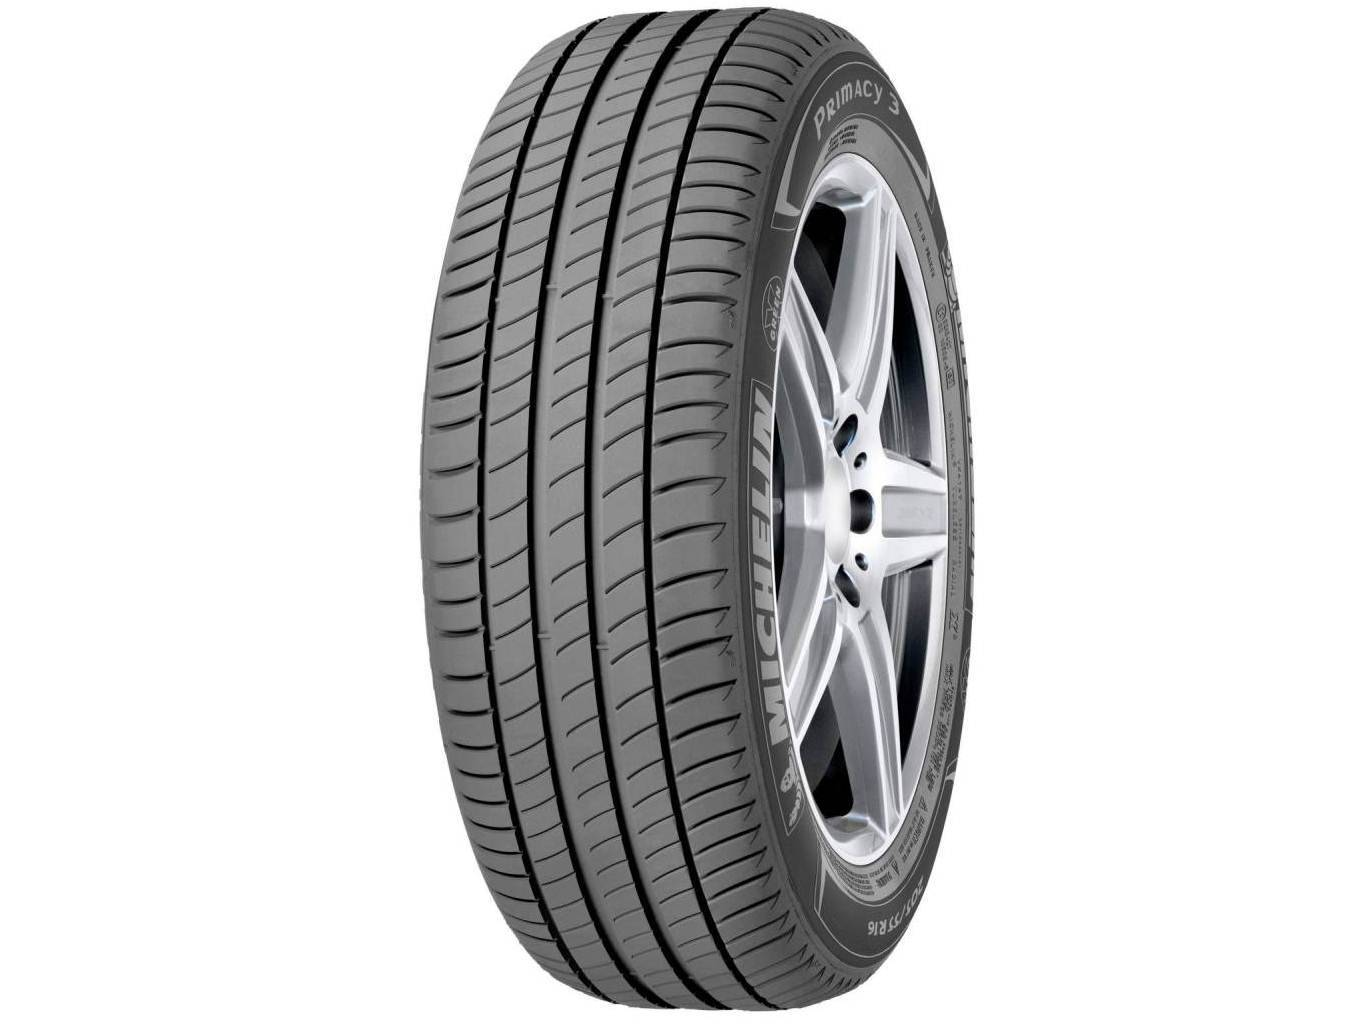 195/50 R16 Michelin Primacy 3 88V XL